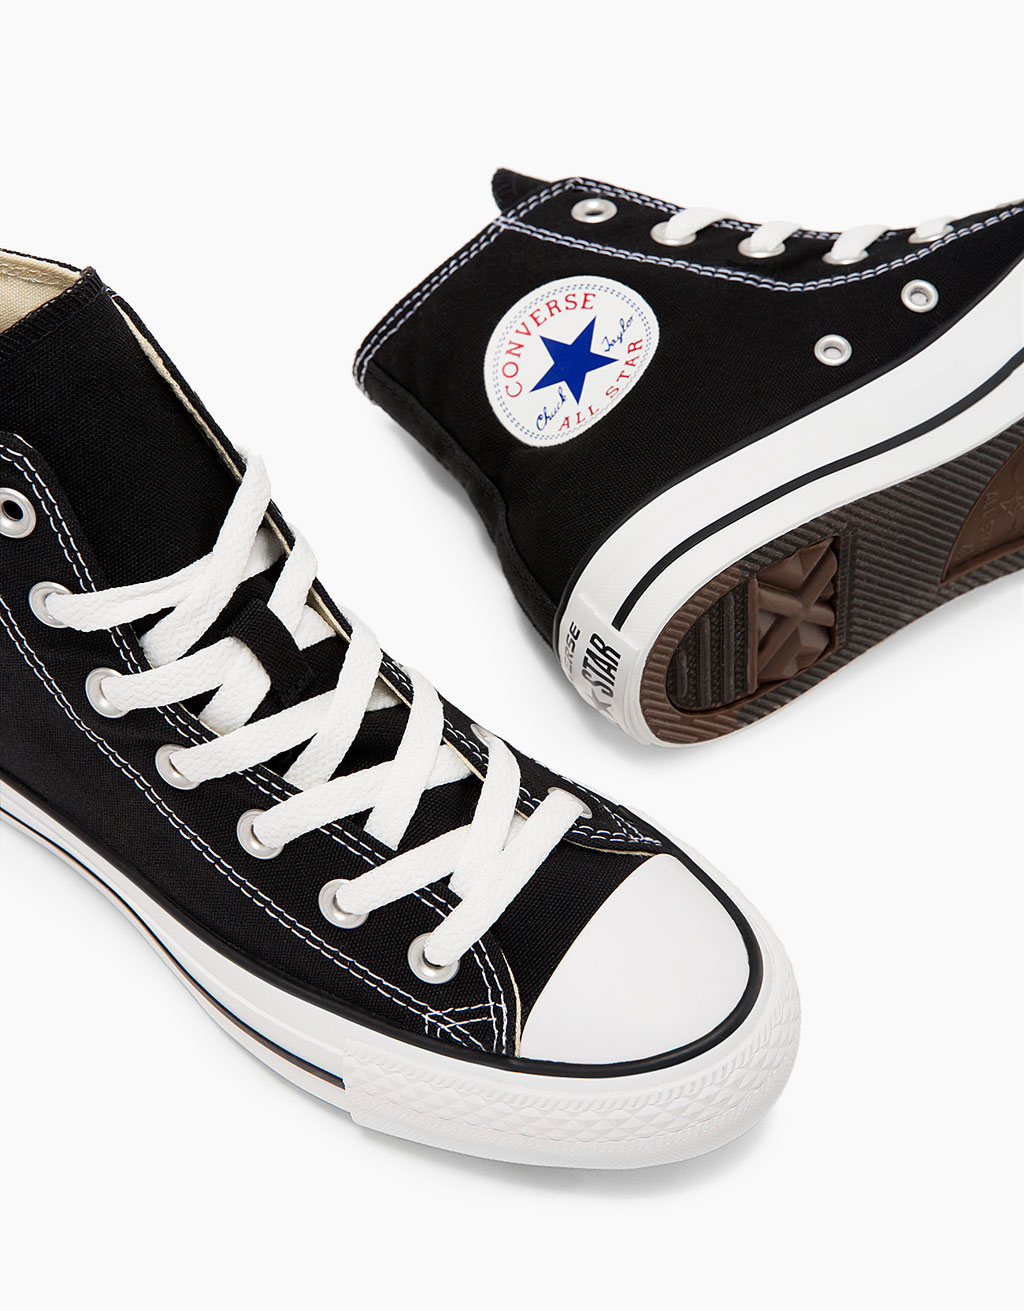 CONVERSE ALL STAR high top canvas sneakers